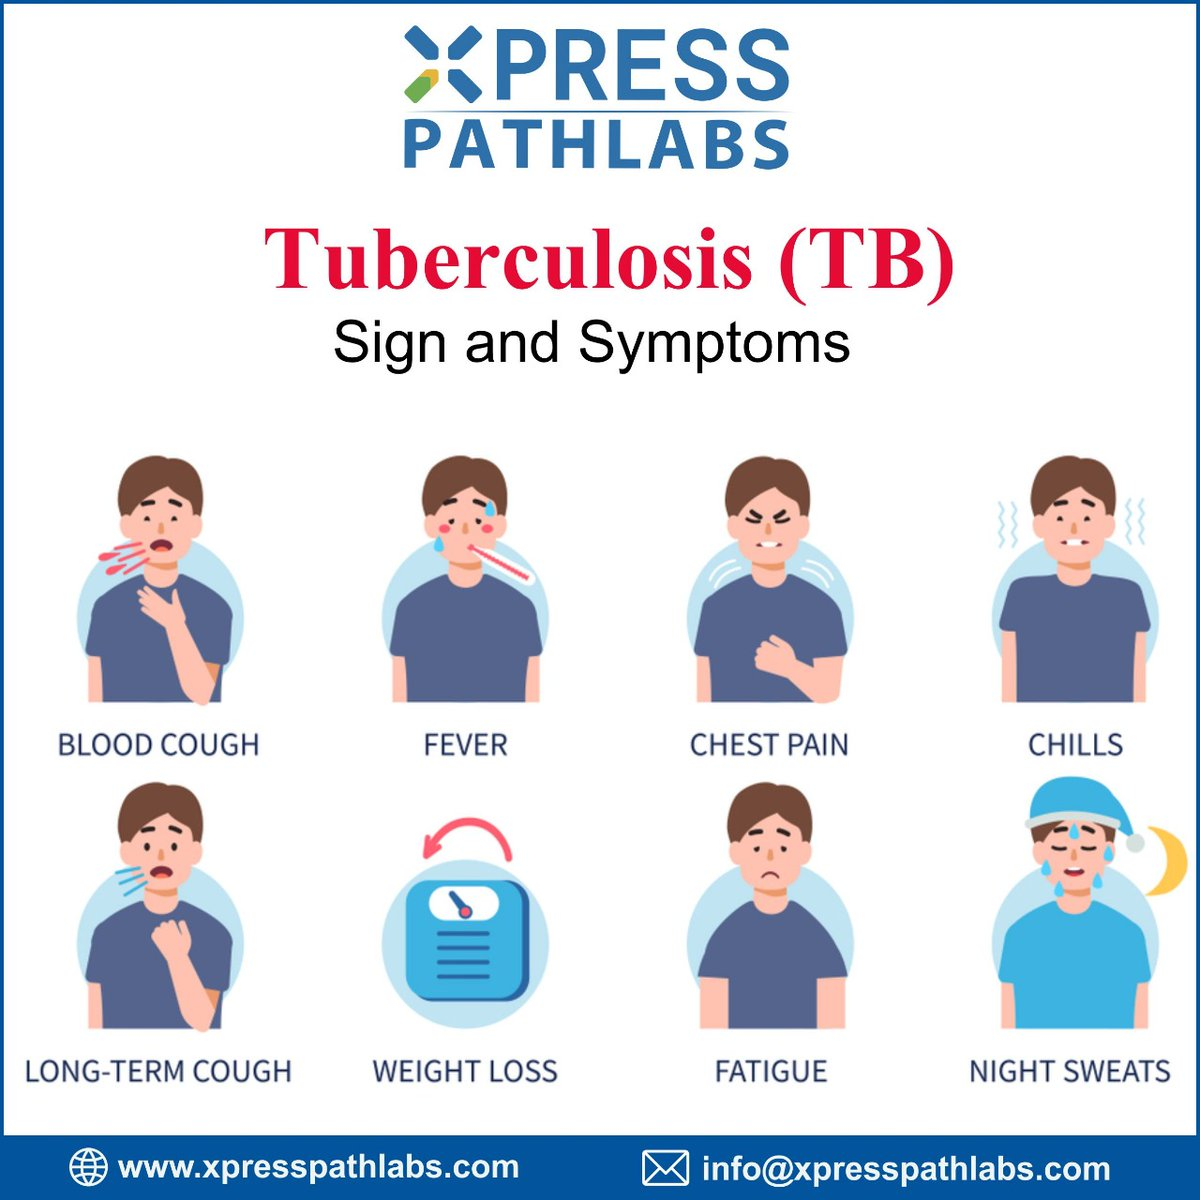 Tuberculosis (TB) Sign and Symptoms. #GoodMorning🌄 #SwasthaBharat #StaySafe #SafetyFirst #HealthyLife #healthiswealth #TB #XpressPathlabs